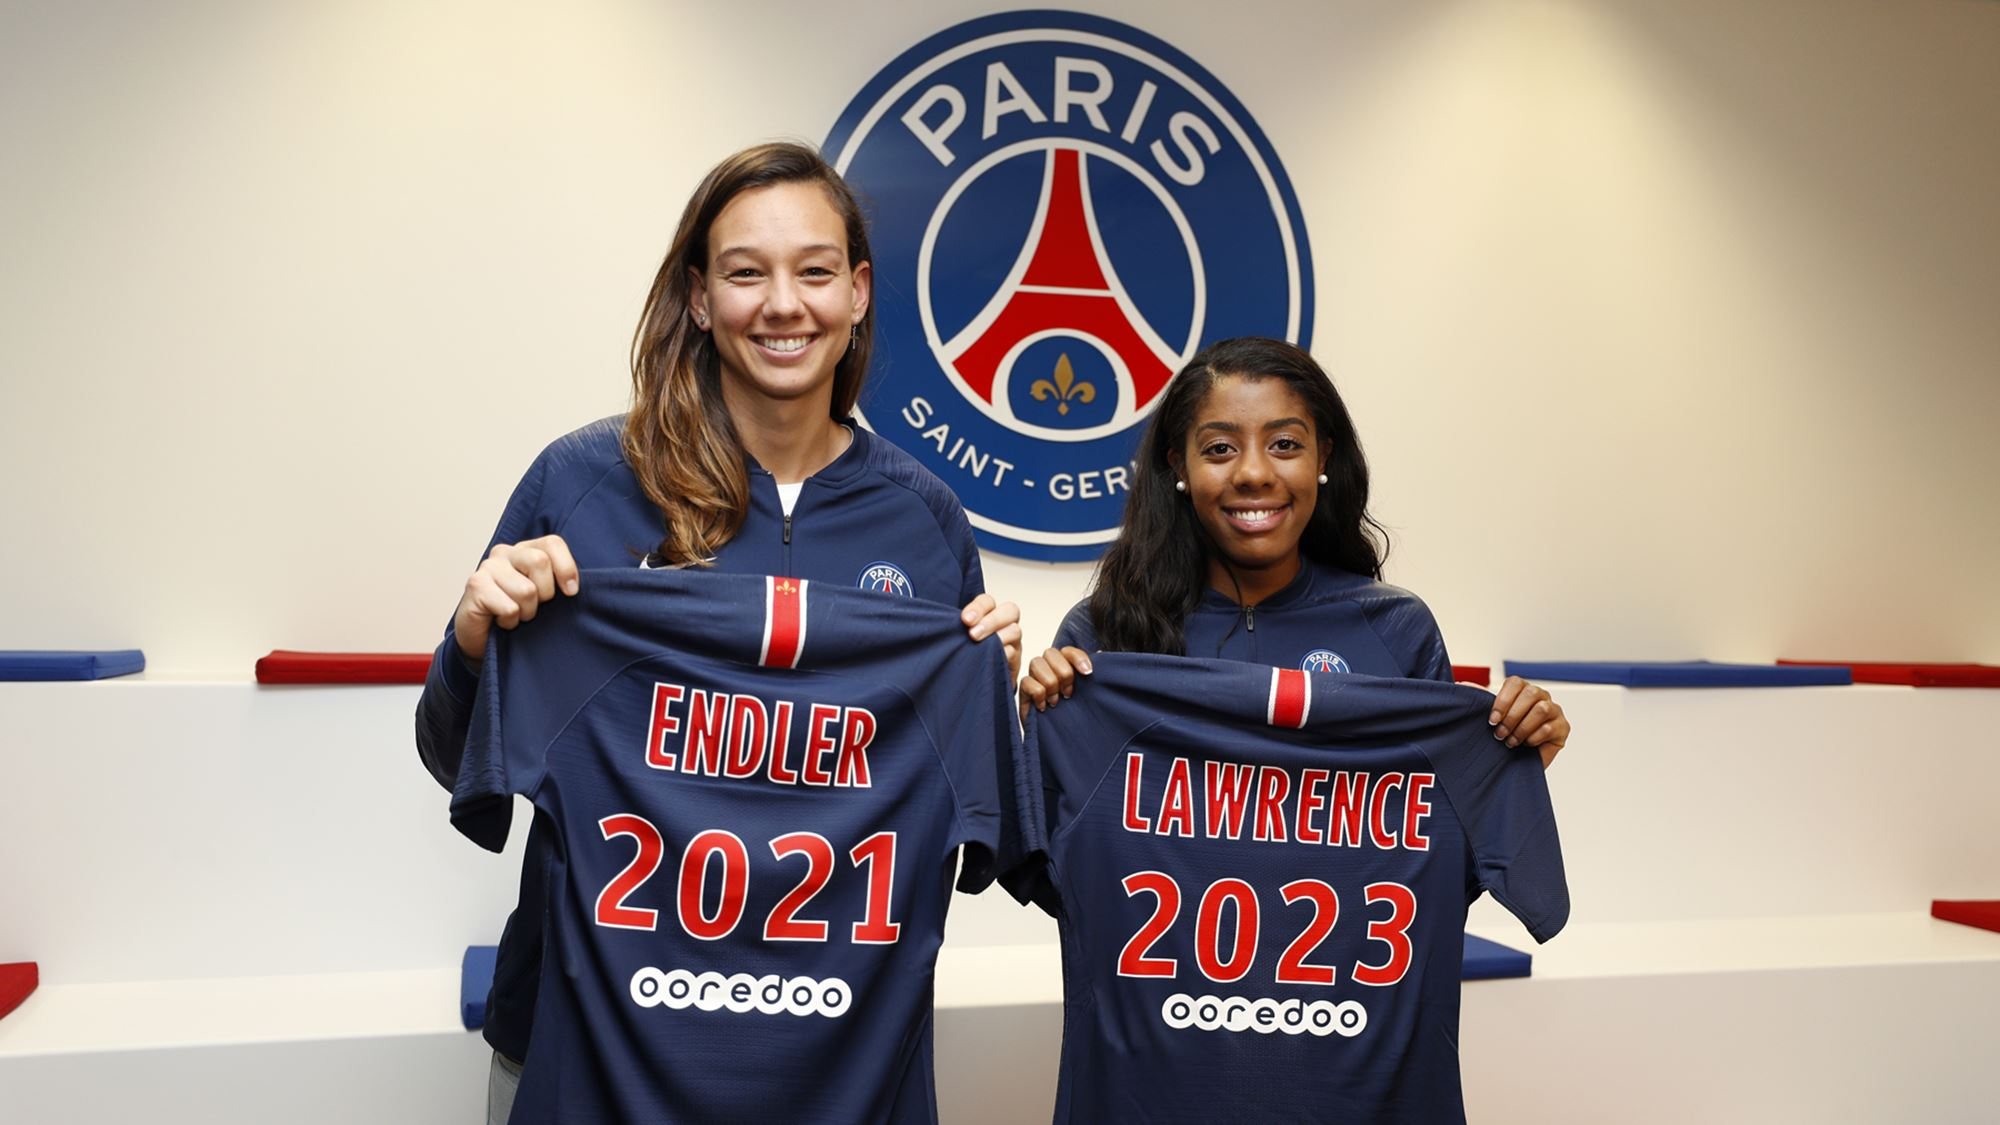 D1 : Christiane Endler et Ashley Lawrence prolongent leurs contrats avec le PSG